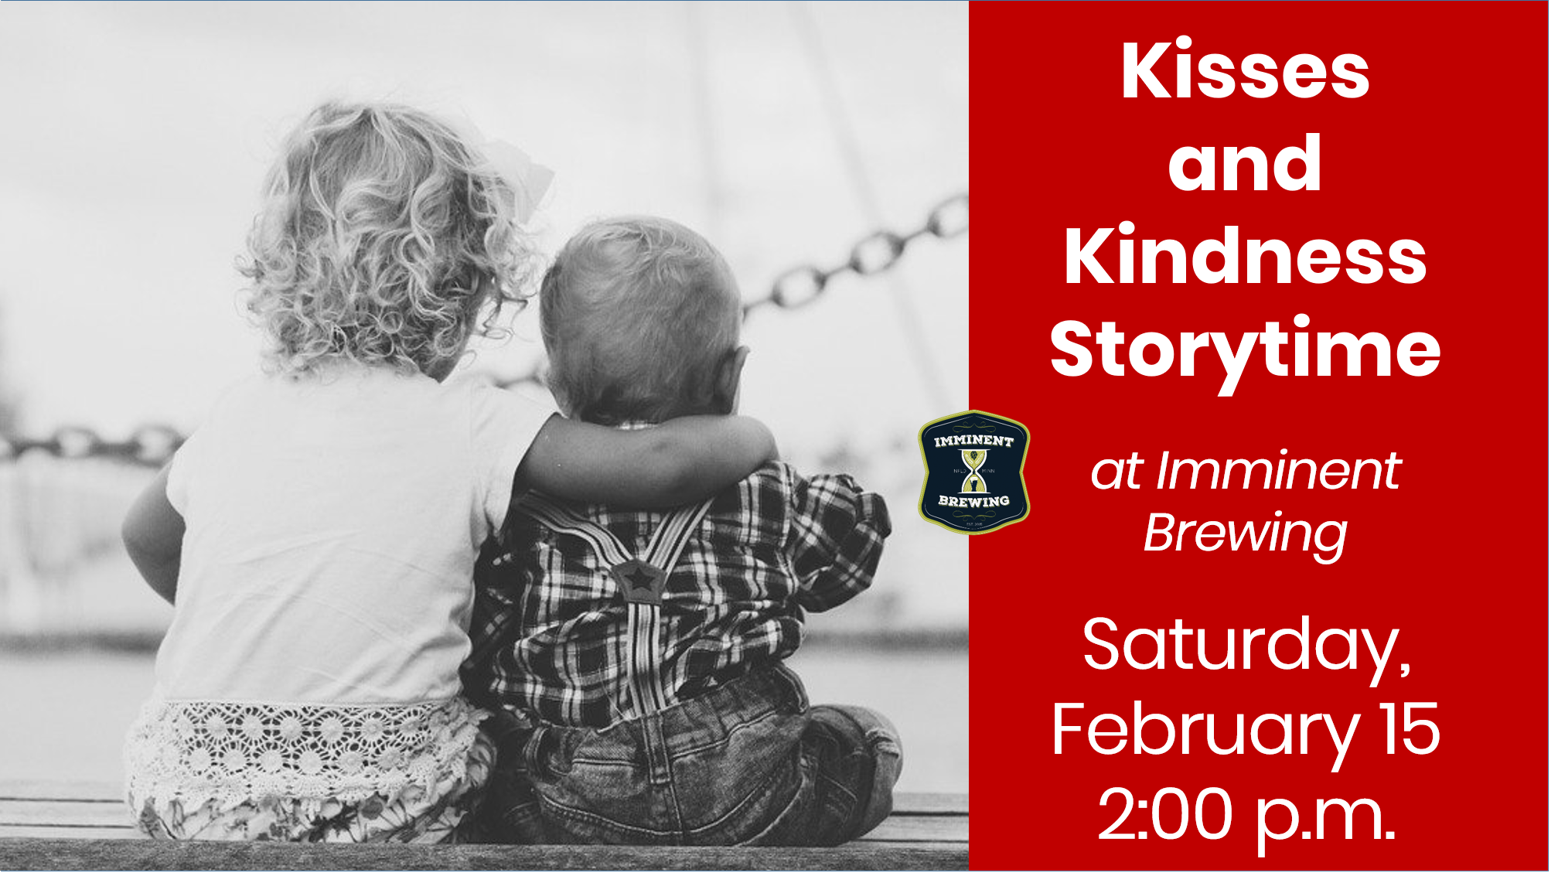 Kisses & Kindness Storytime at Imminent Brewing